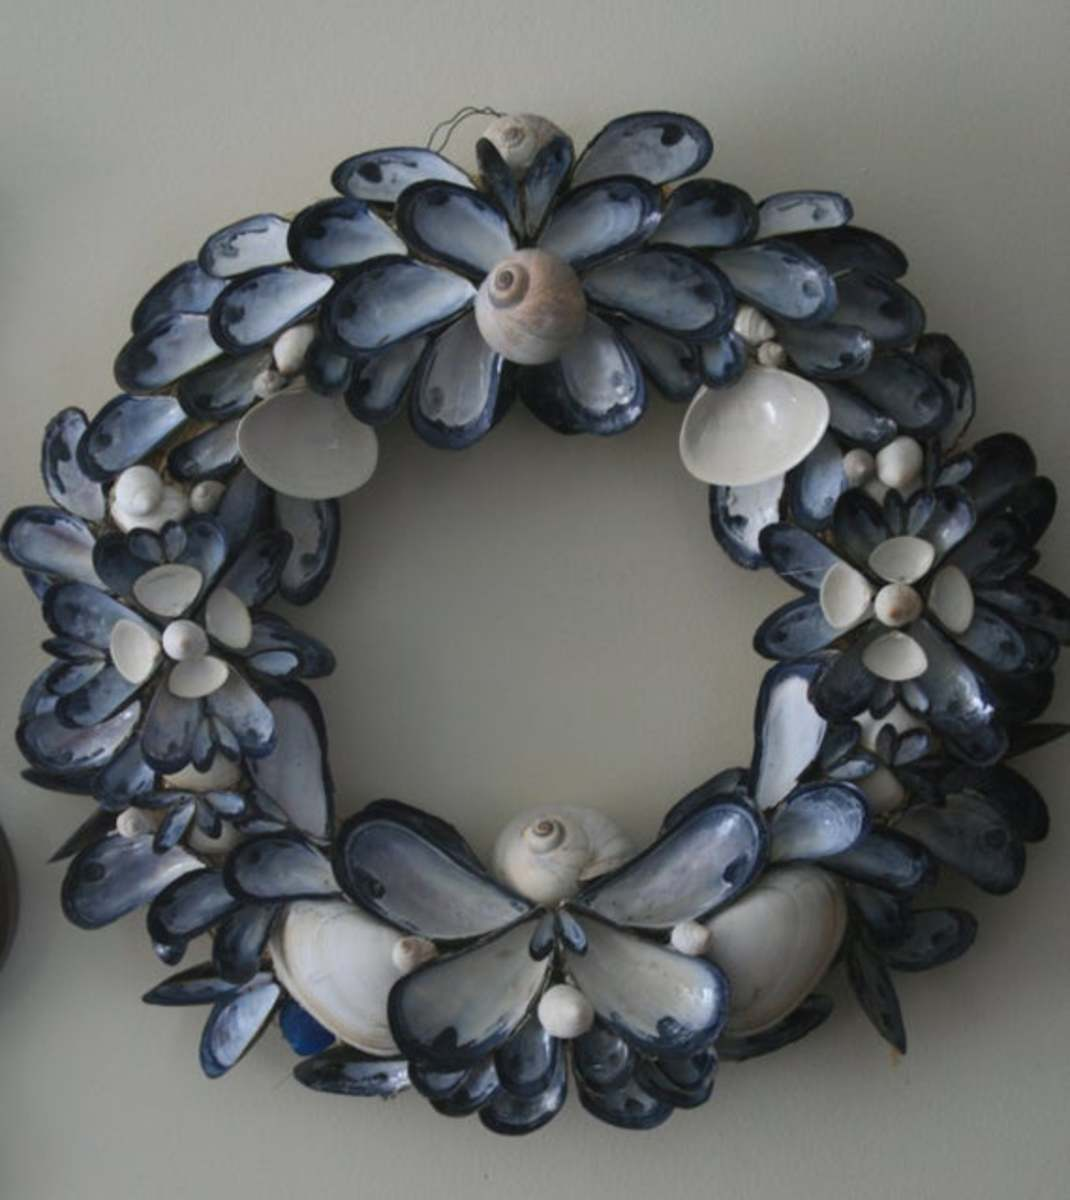 A mussel shell wreath has a lovely blue/black toned color